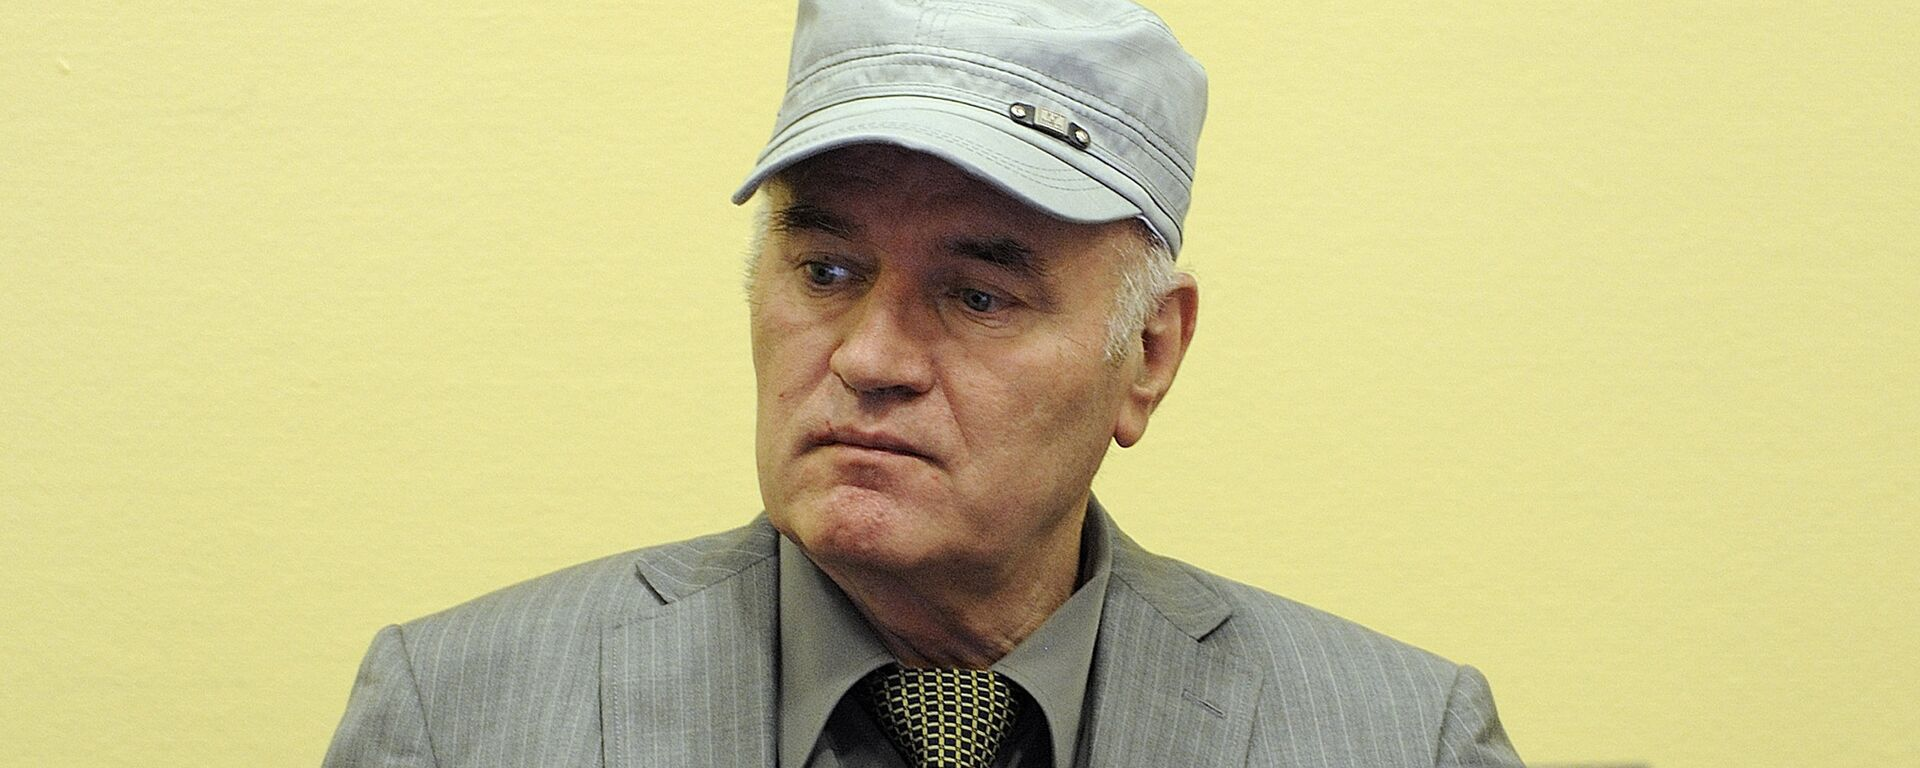 Wartime Bosnian Serb army chief Ratko Mladic sits in the court during his initial appearance at UN war crimes tribunal in The Hague - Sputnik Mundo, 1920, 26.08.2020